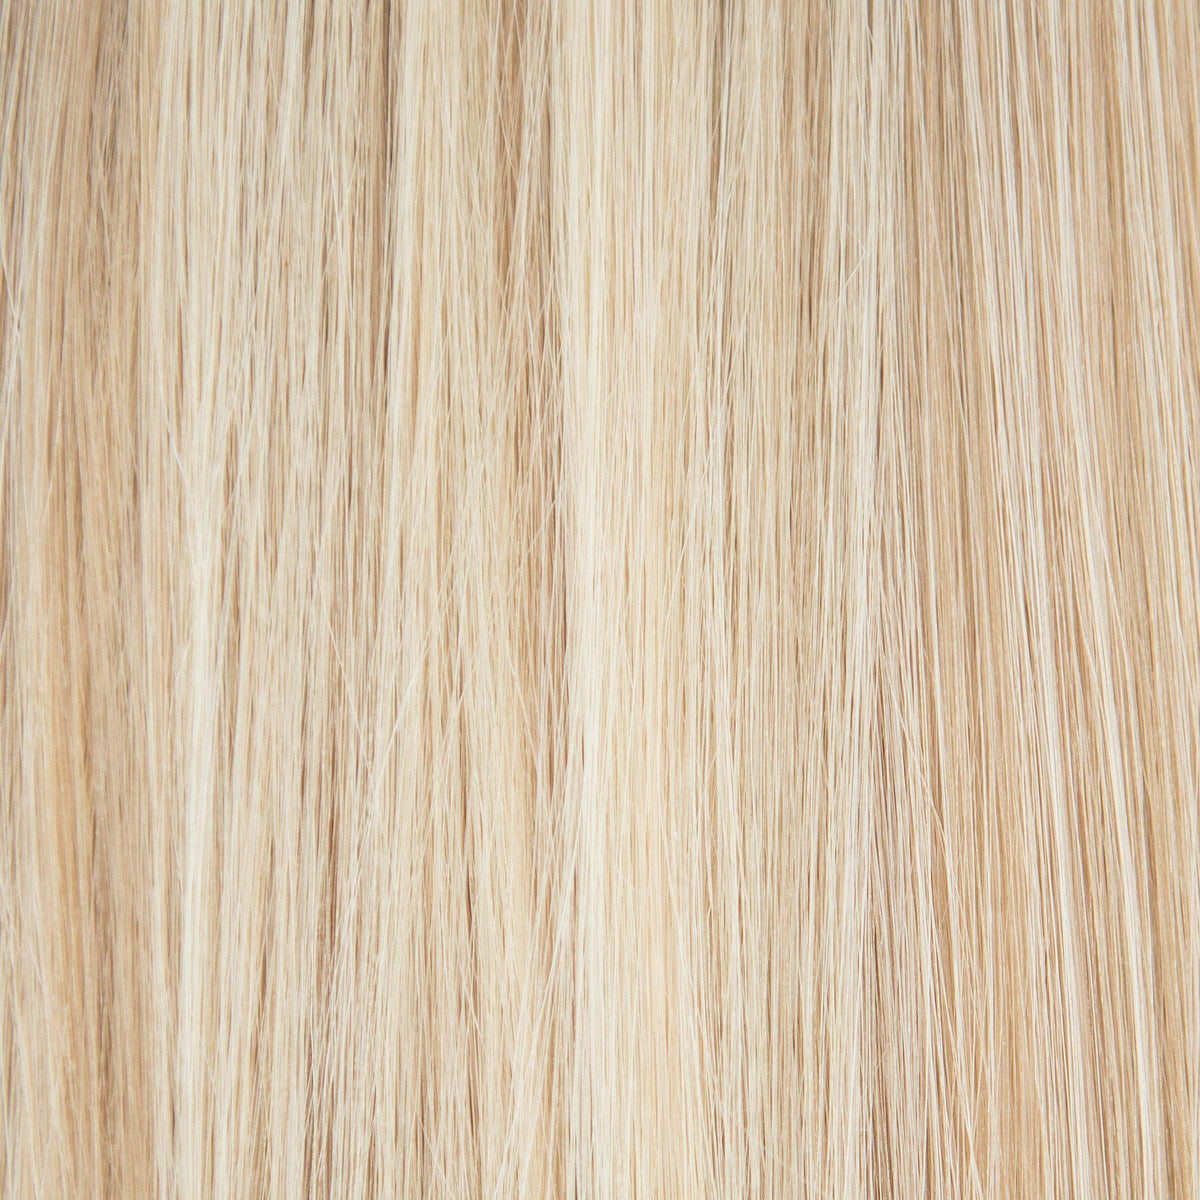 Waved By Laced Hair - Waved By Laced Hair Hand Tied Weft Extensions Dimensional #18/22